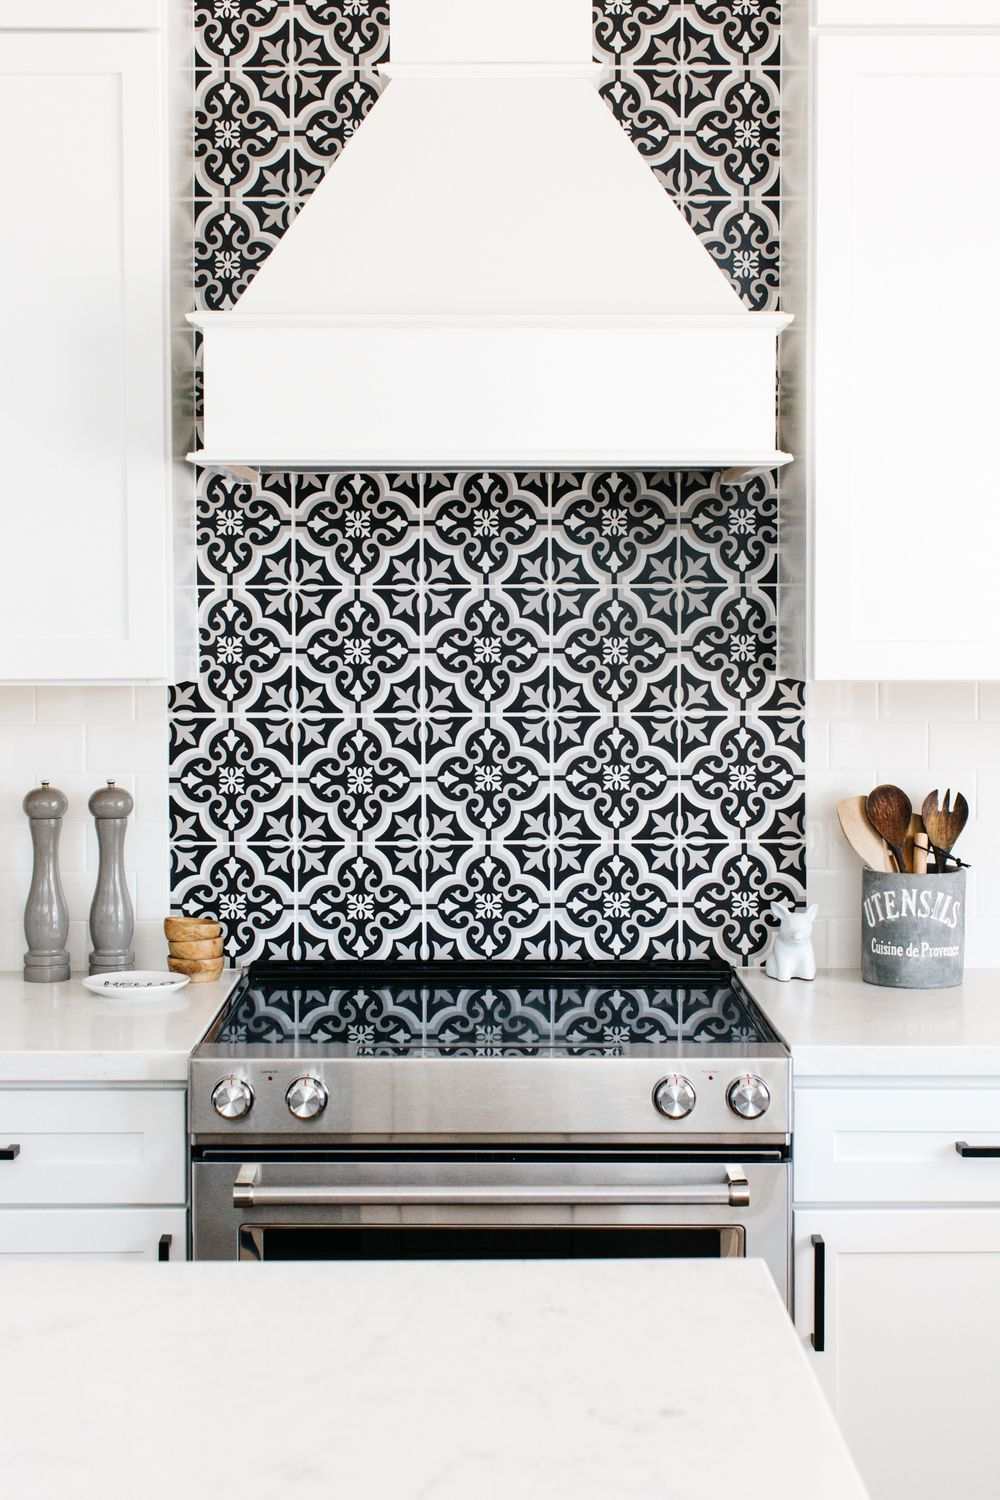 Backsplash Black Kitchen Tiles Black Patterned Tile White